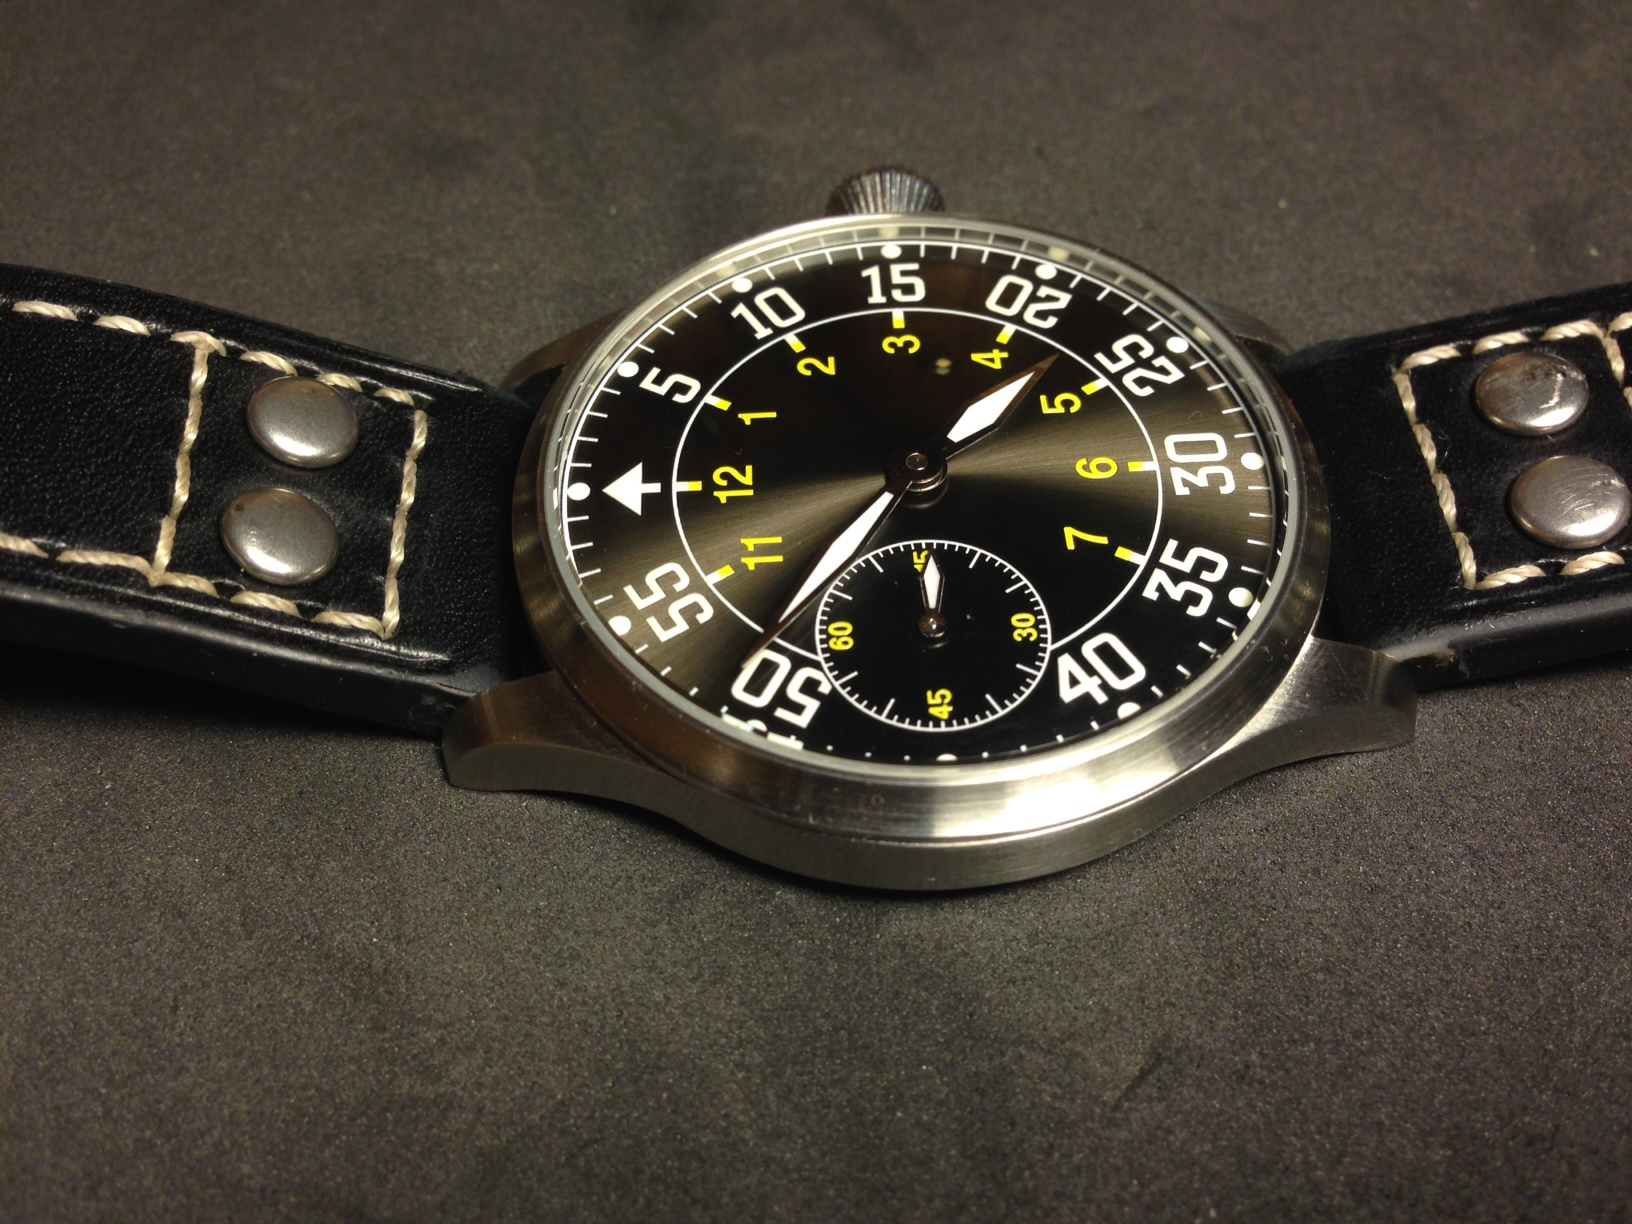 How to build your own mechanical watch tick tick tick tick how to build your own mechanical watch flieger watch 2 solutioingenieria Images